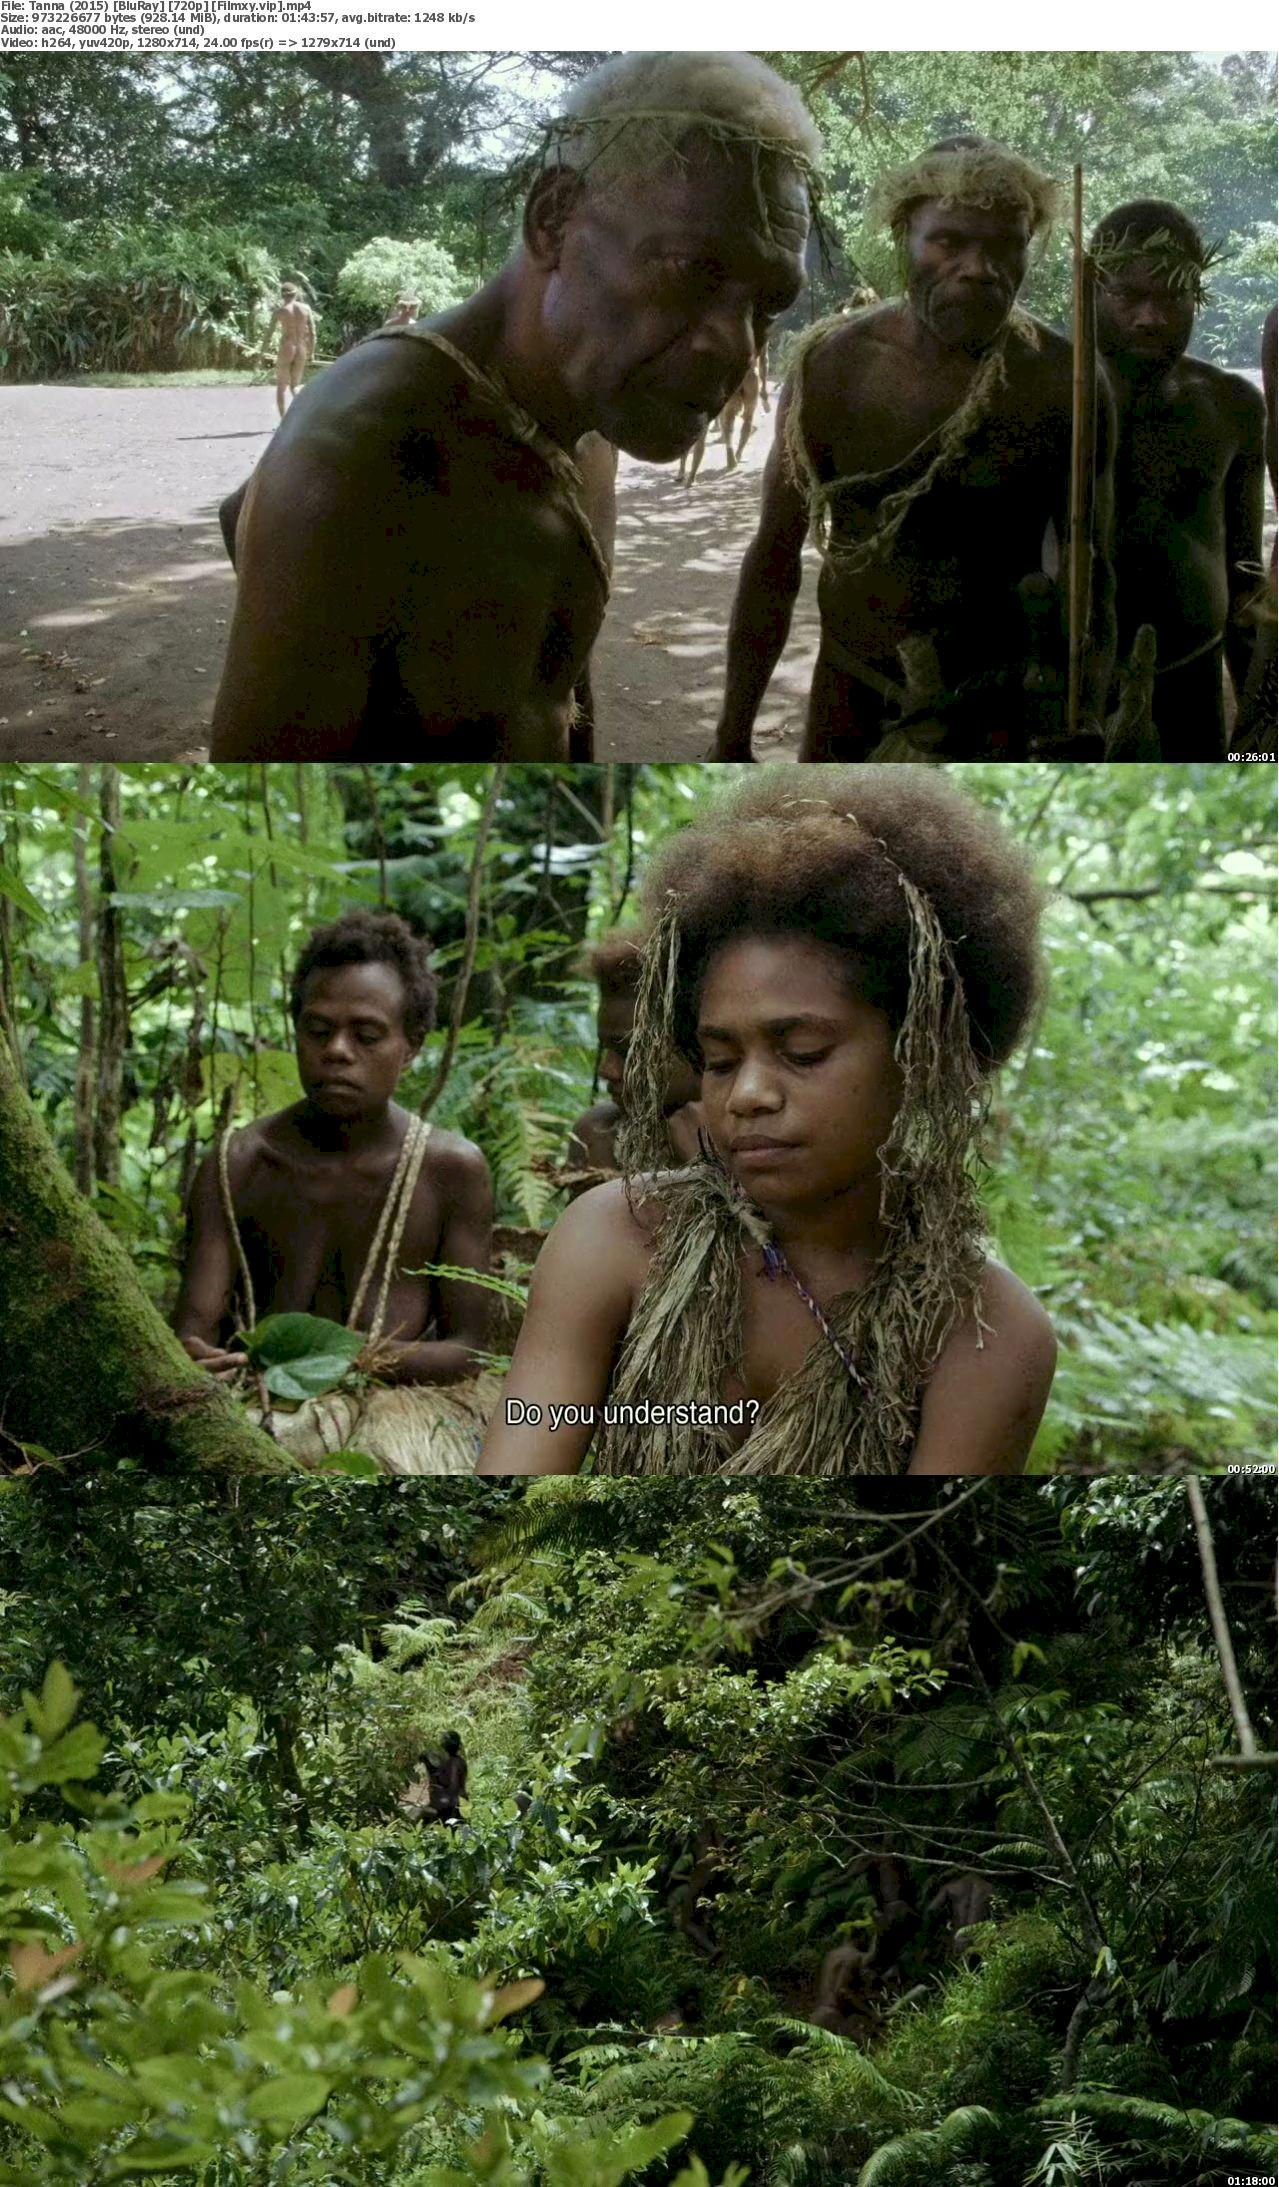 Tanna (2015) [720p & 1080p] Bluray Free Movie Watch Online & Download 720p Screenshot